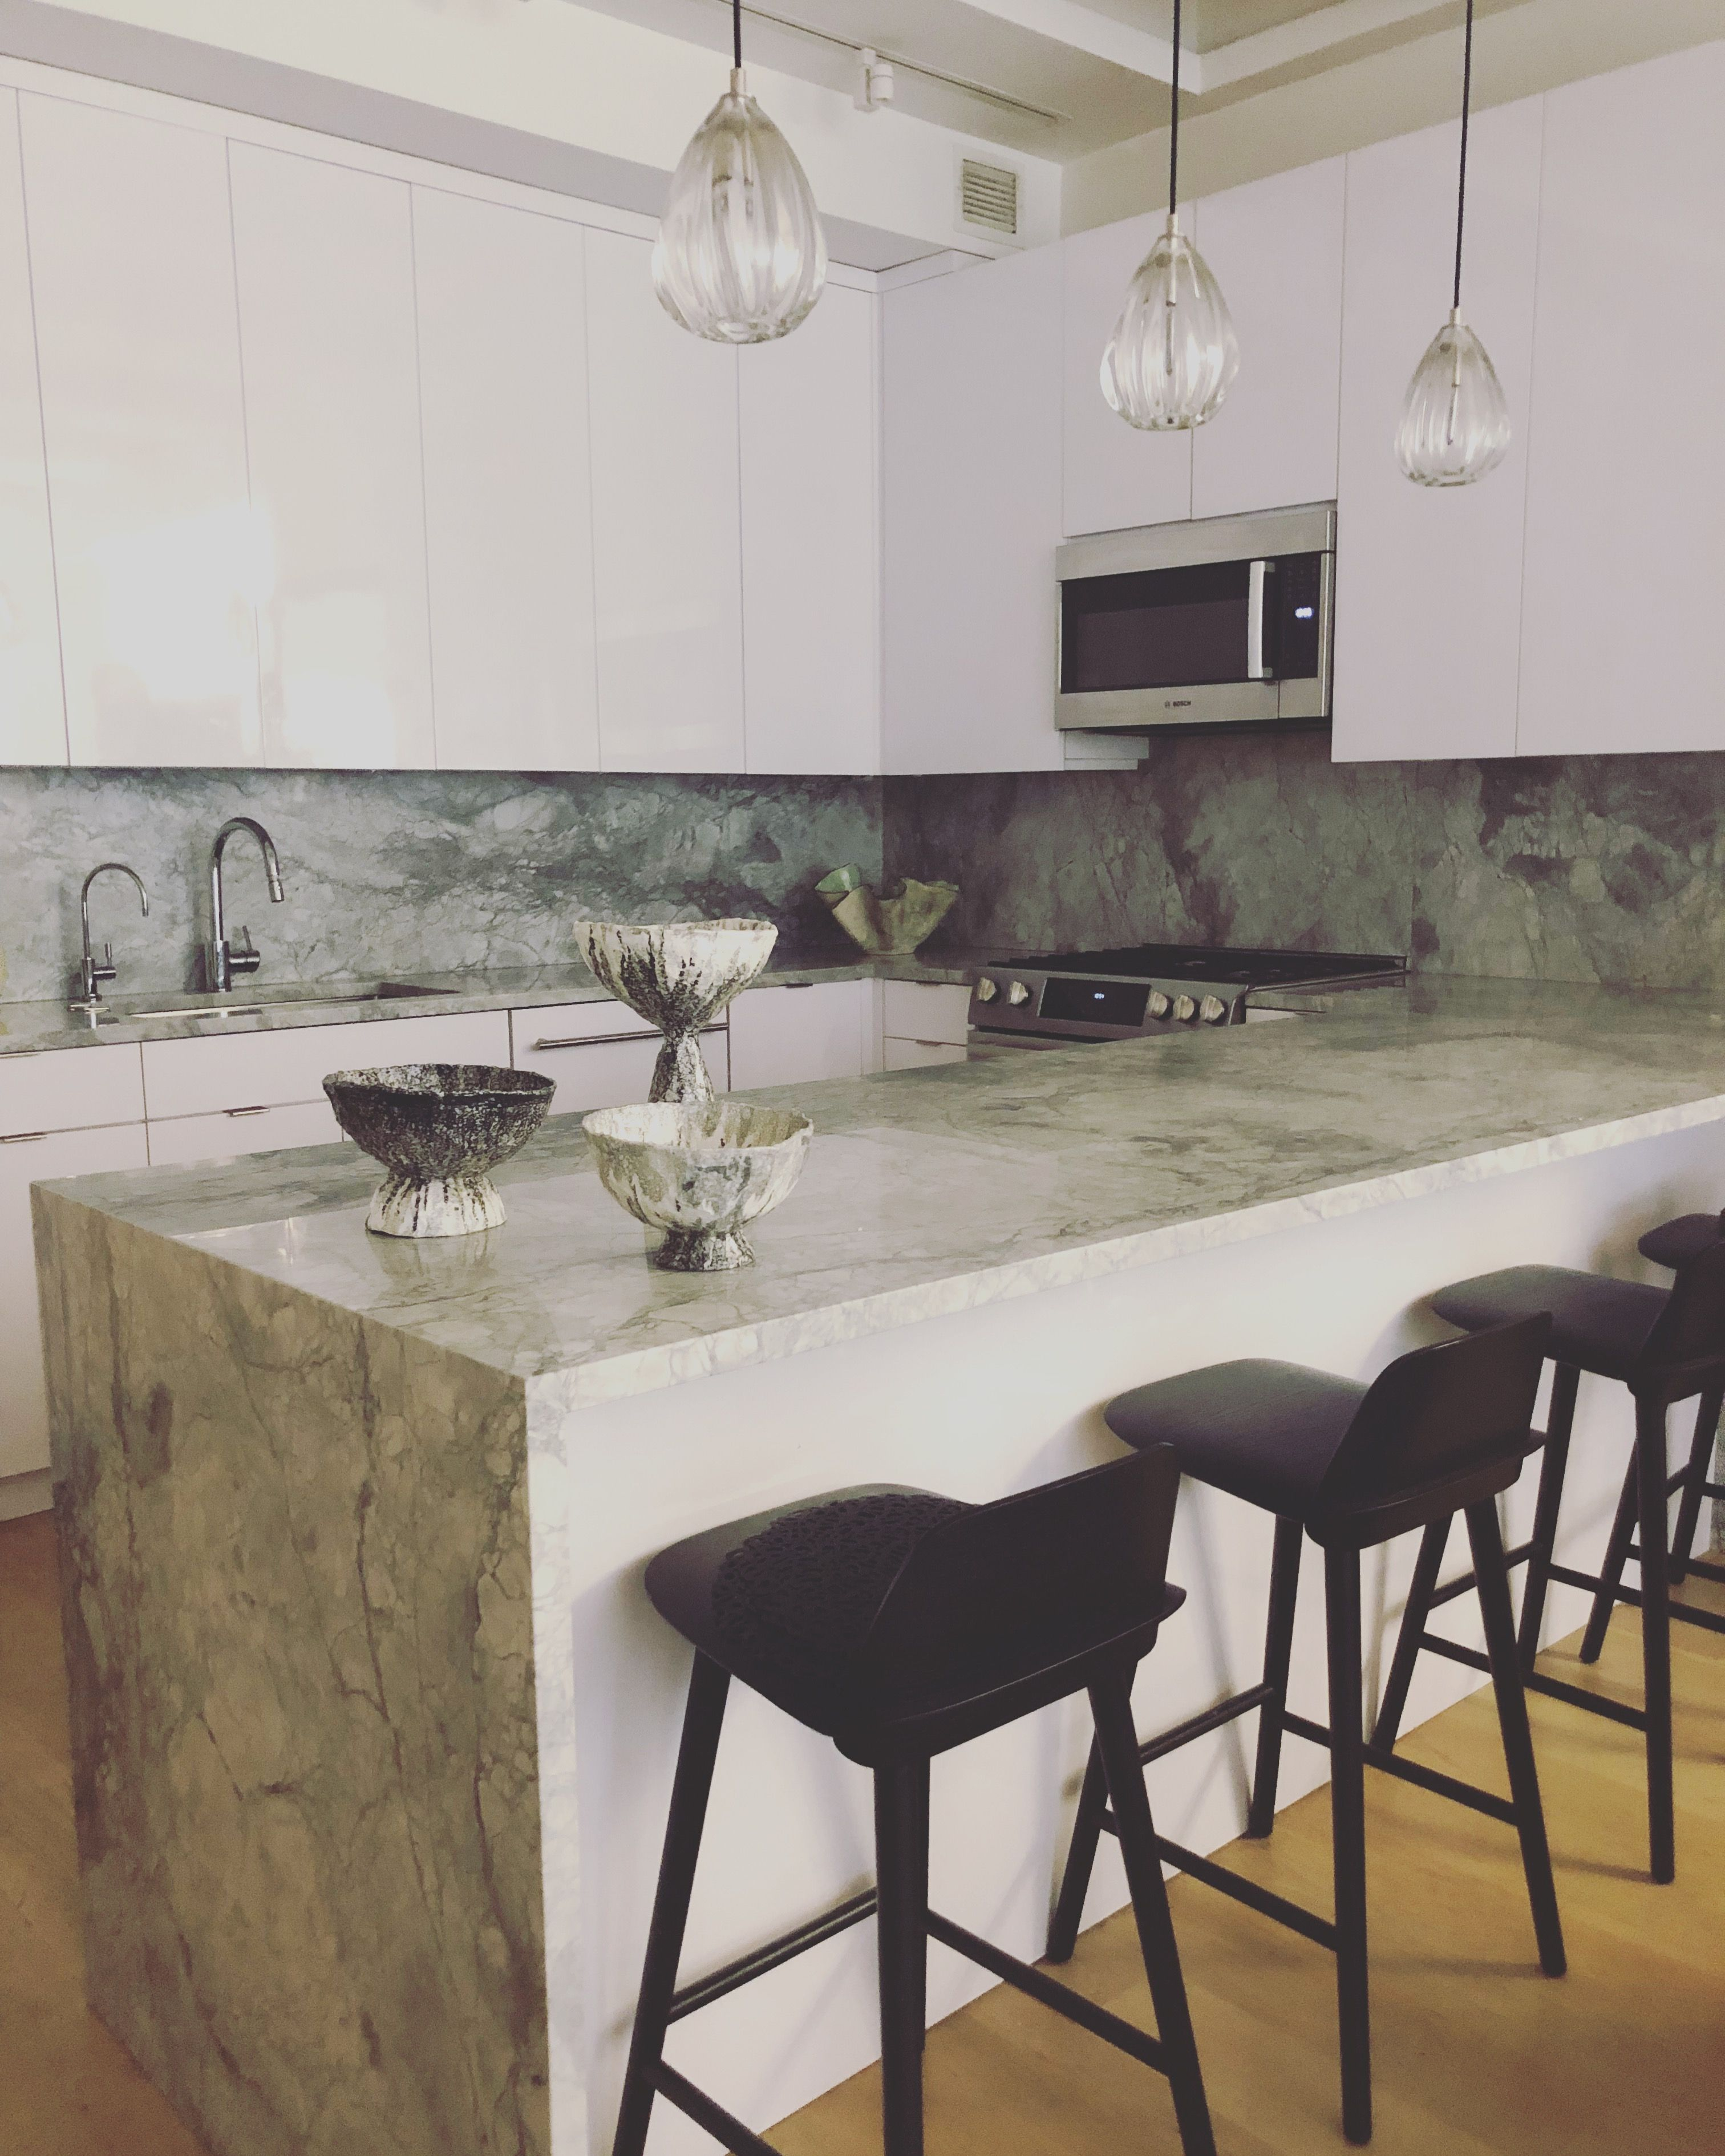 Nyc project kitchens pinterest nyc projects design and projects